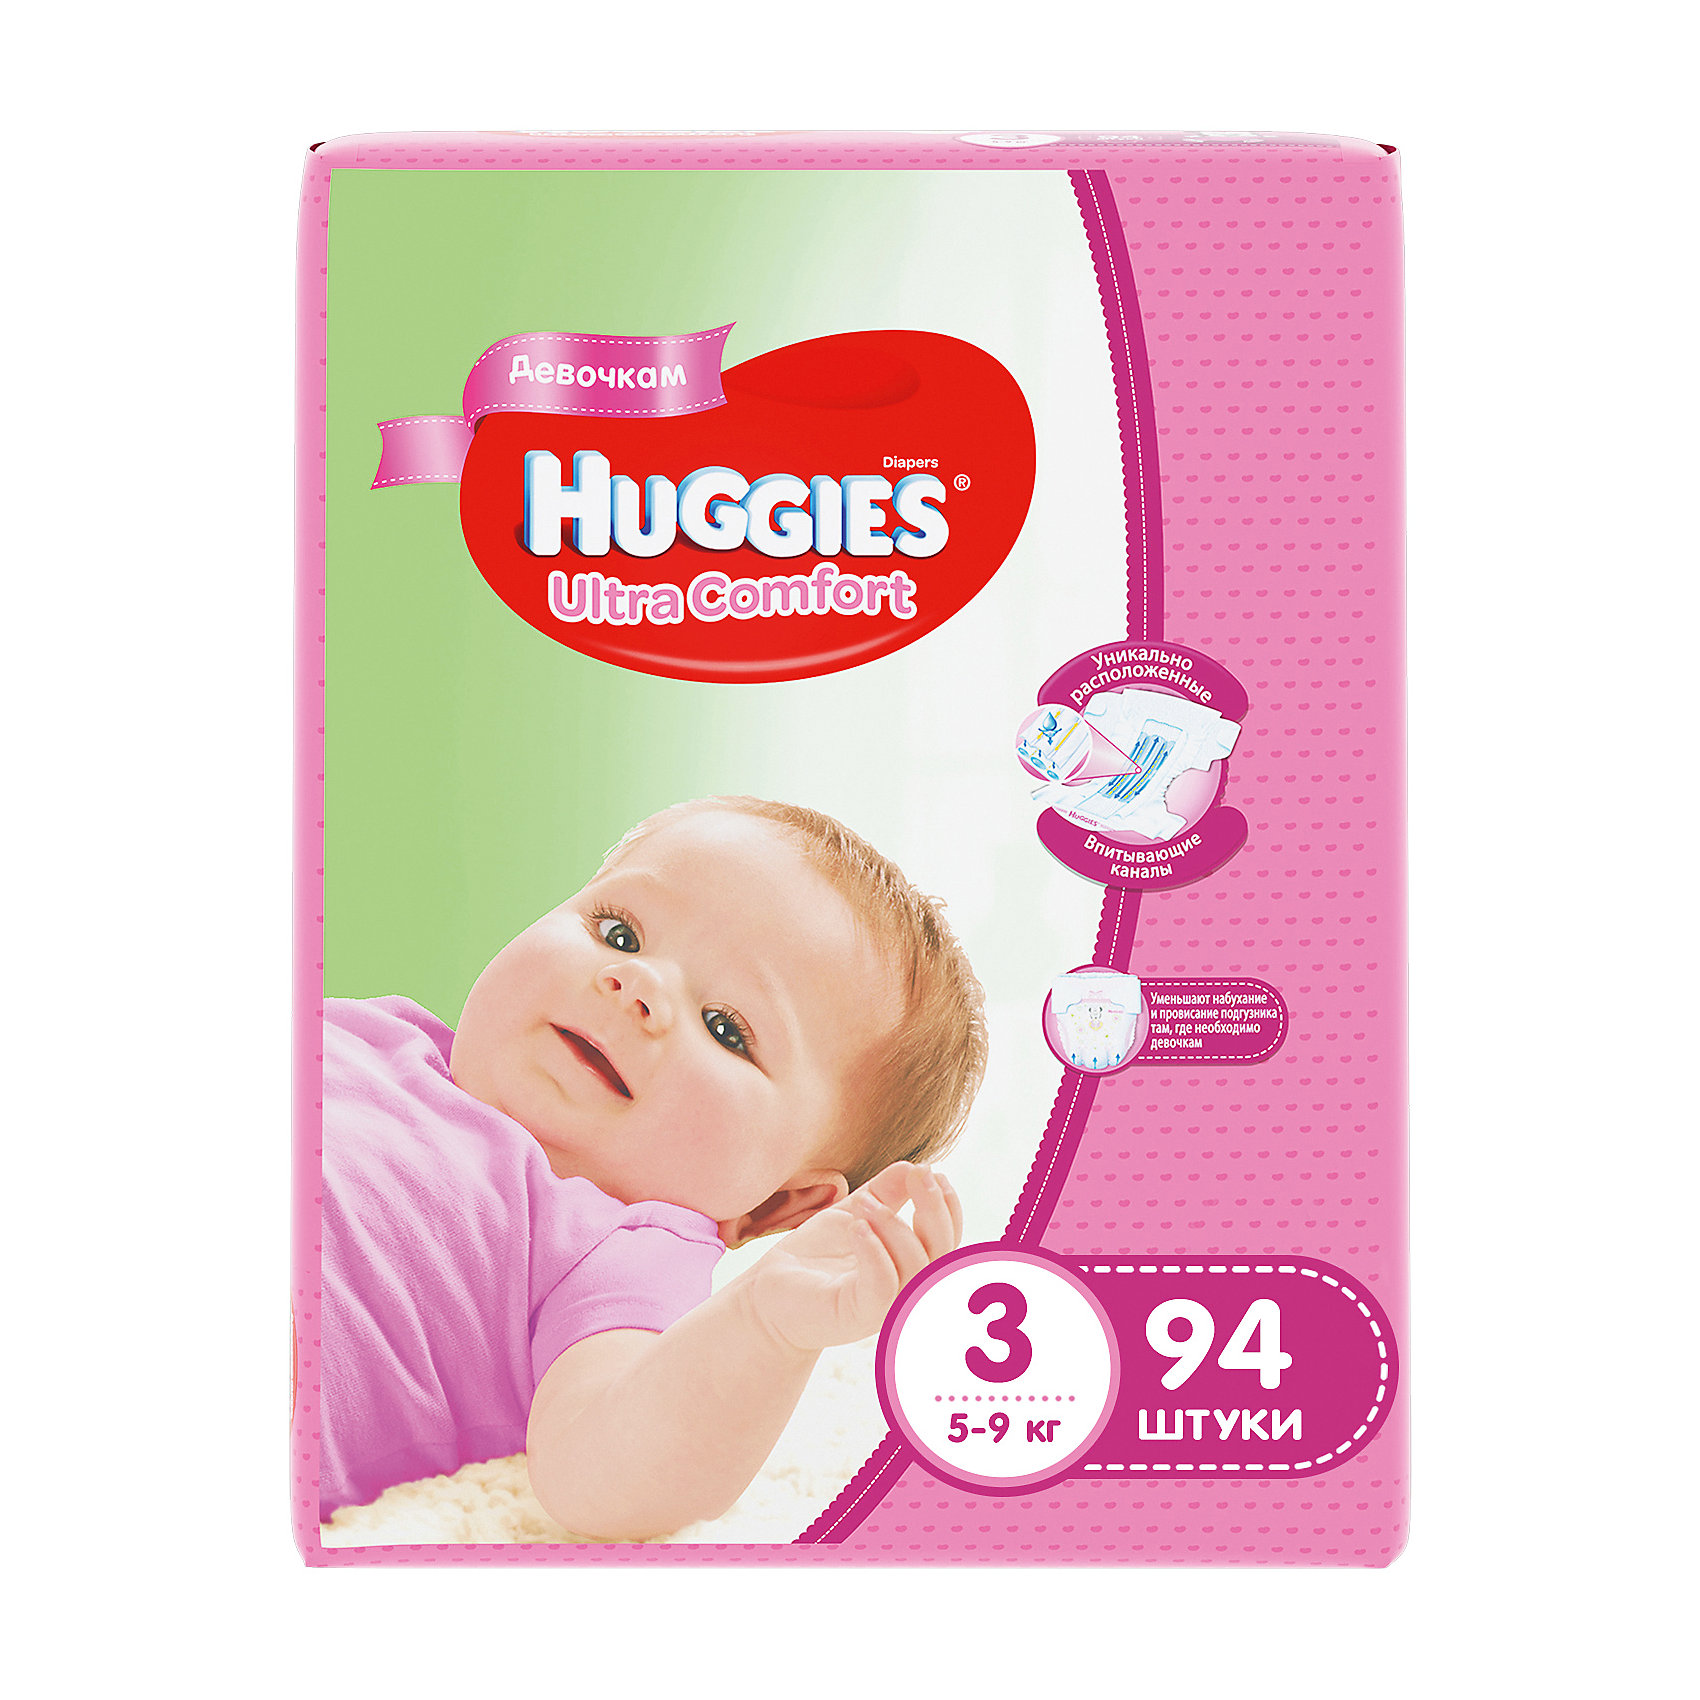 ���������� Huggies Ultra Comfort ��� ������� Giga Pack (3) 5-9 ��, 94 ��. (HUGGIES)